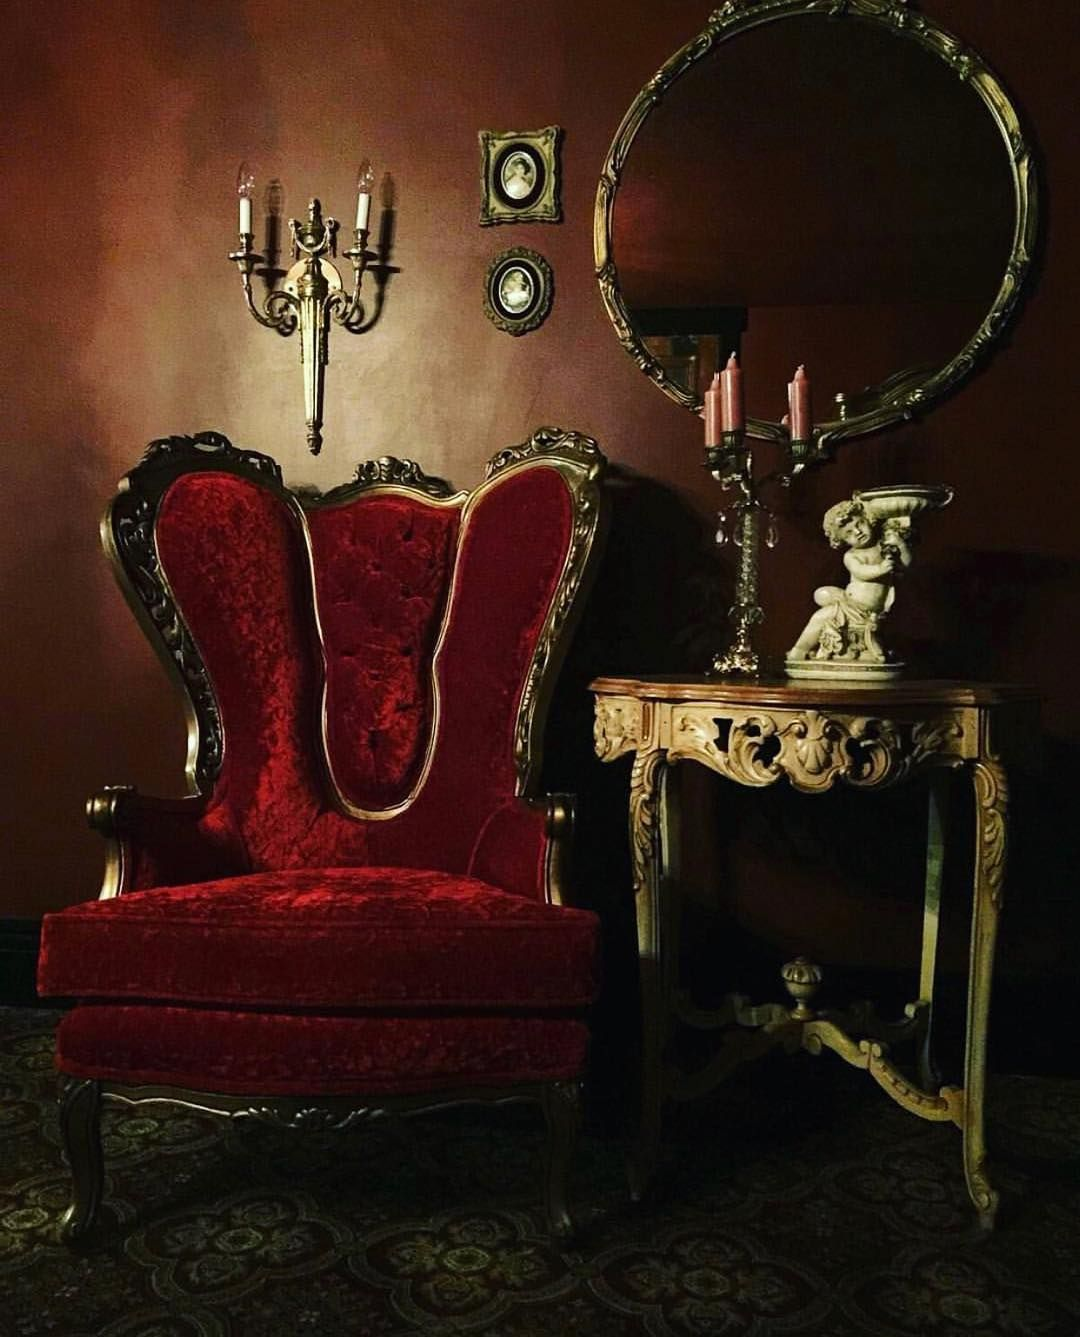 Chaise Gothique 551 Likes 3 Comments Lair Of The Vampire